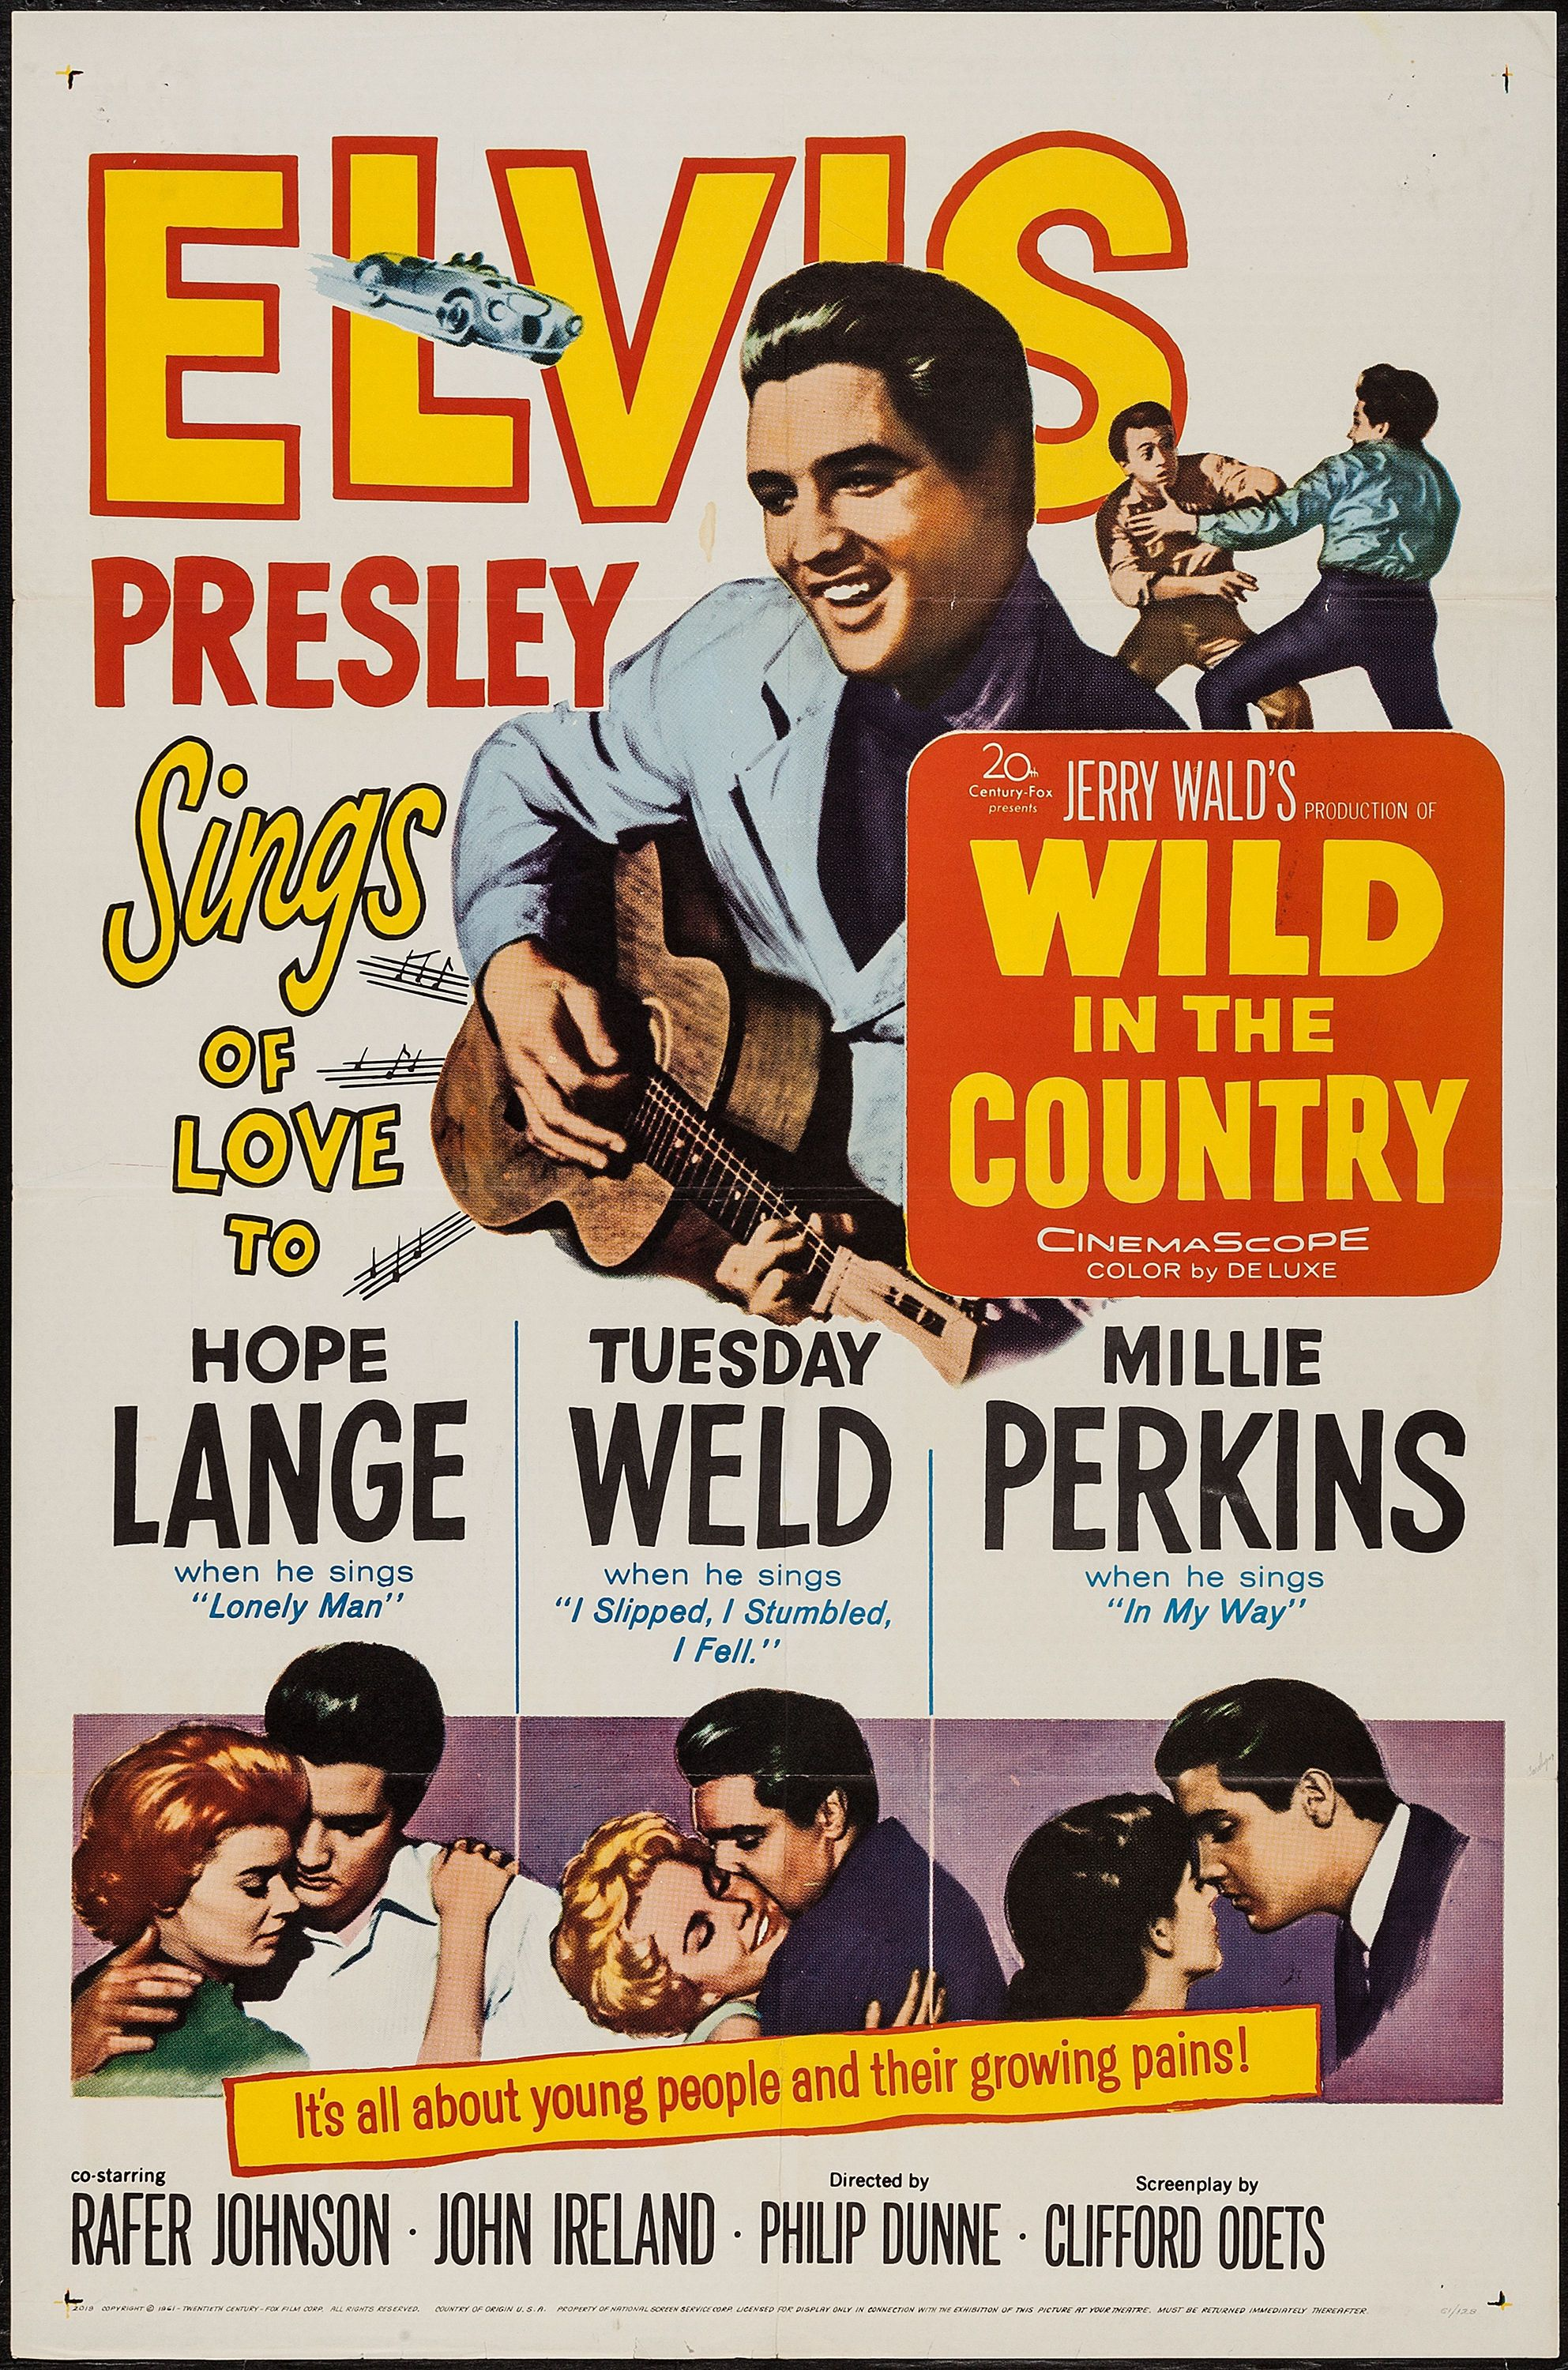 wild in the country (1961) stars: elvis presley, hope lange, tuesday